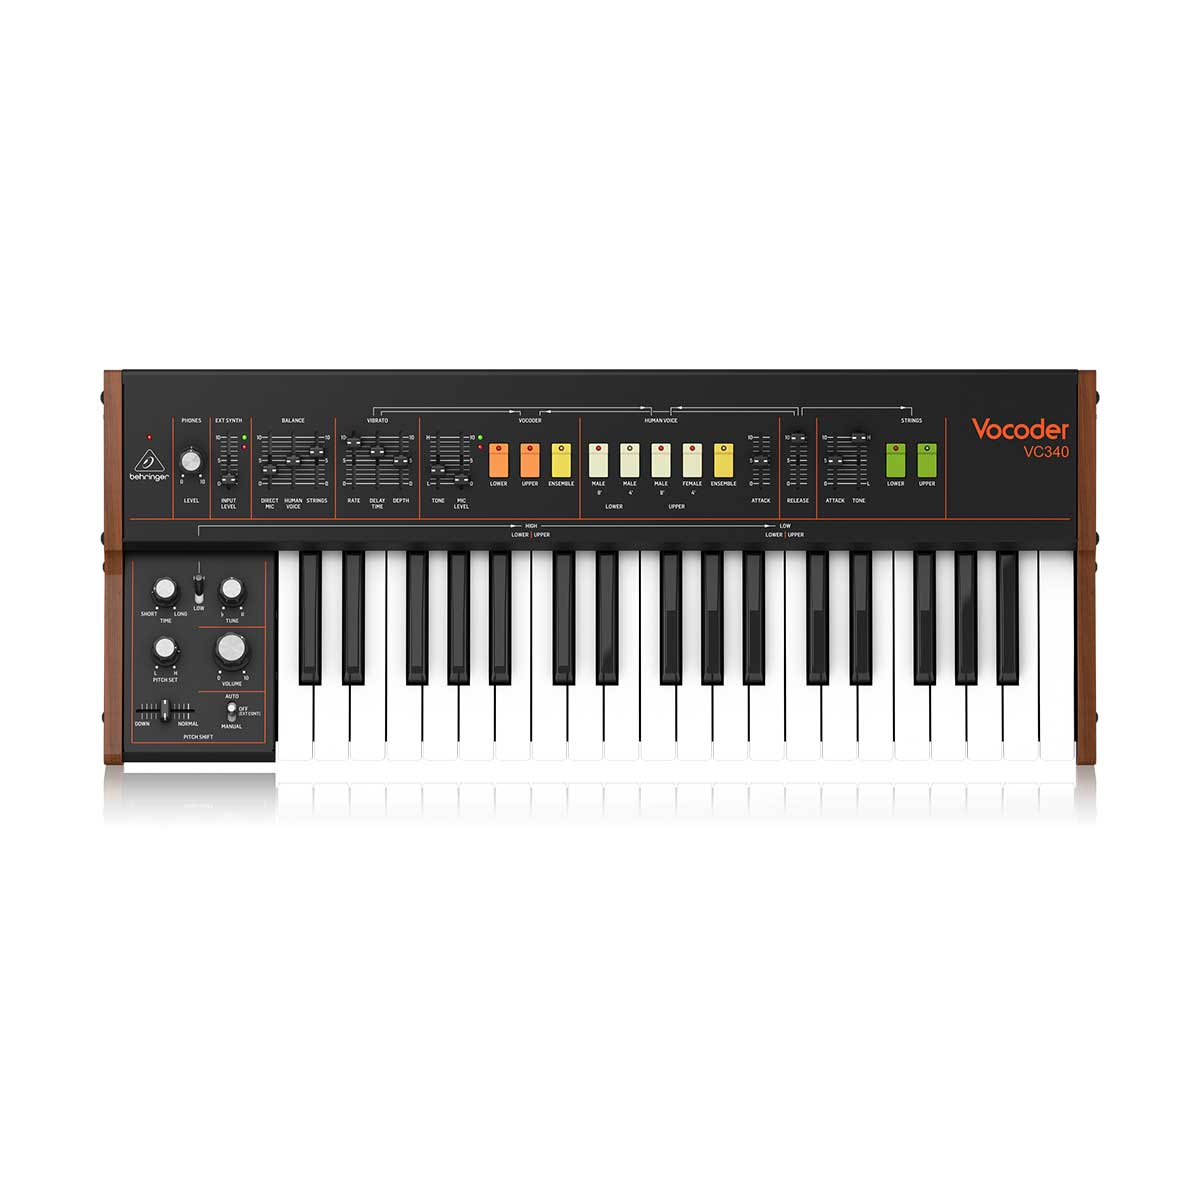 Behringer VC340 Analog Vocoder Synth